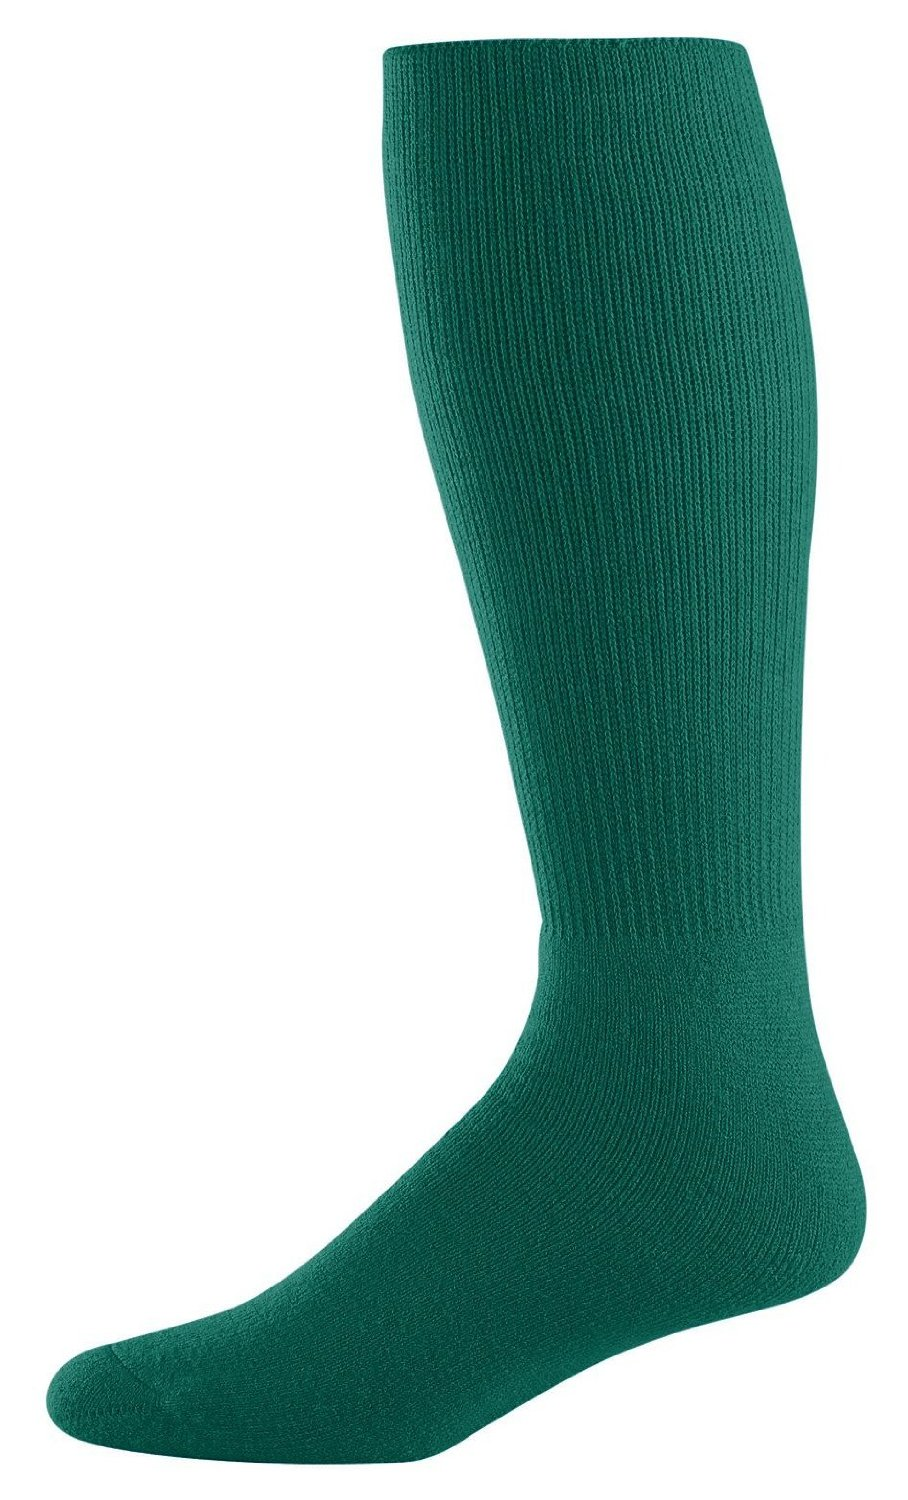 Athletic Socks - Youth Size 7-9, Color: Dark Green, Size: 7 - 9